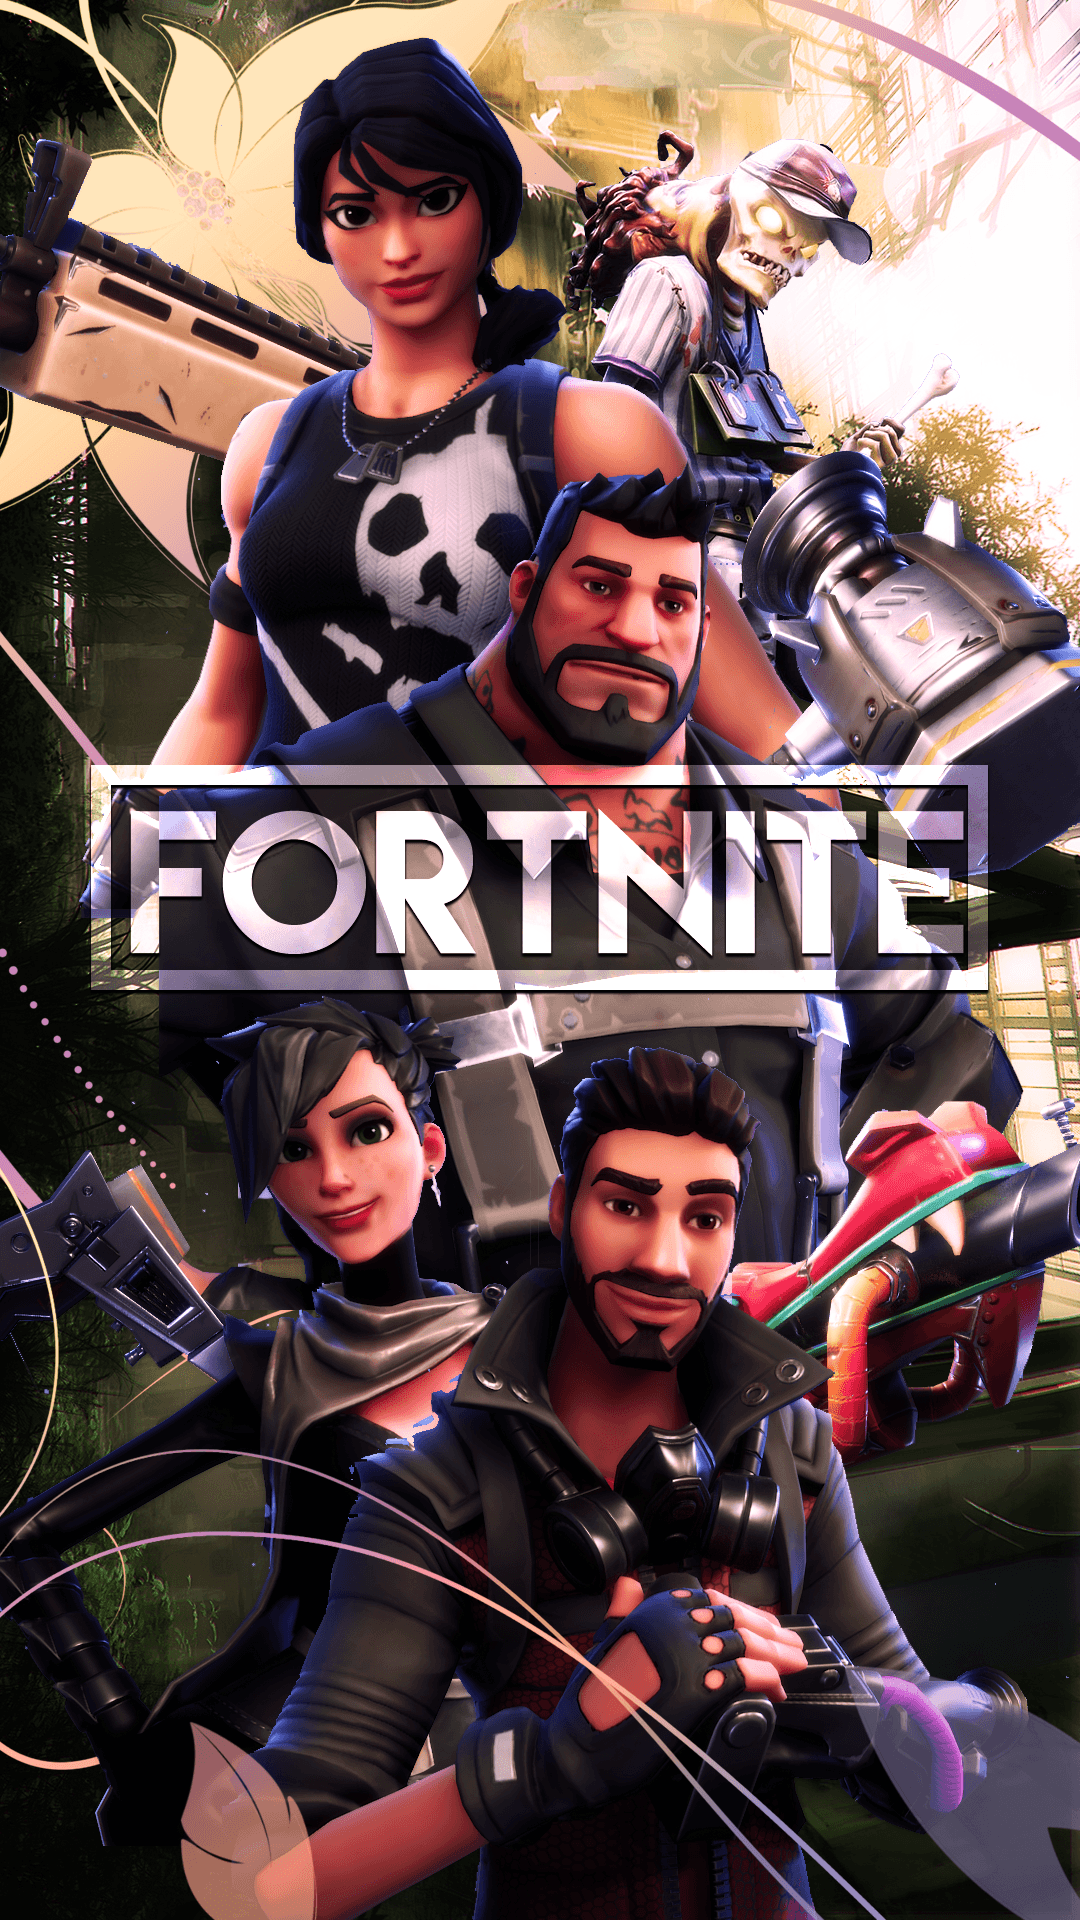 Fortnite wallpapers HD for your cellphone